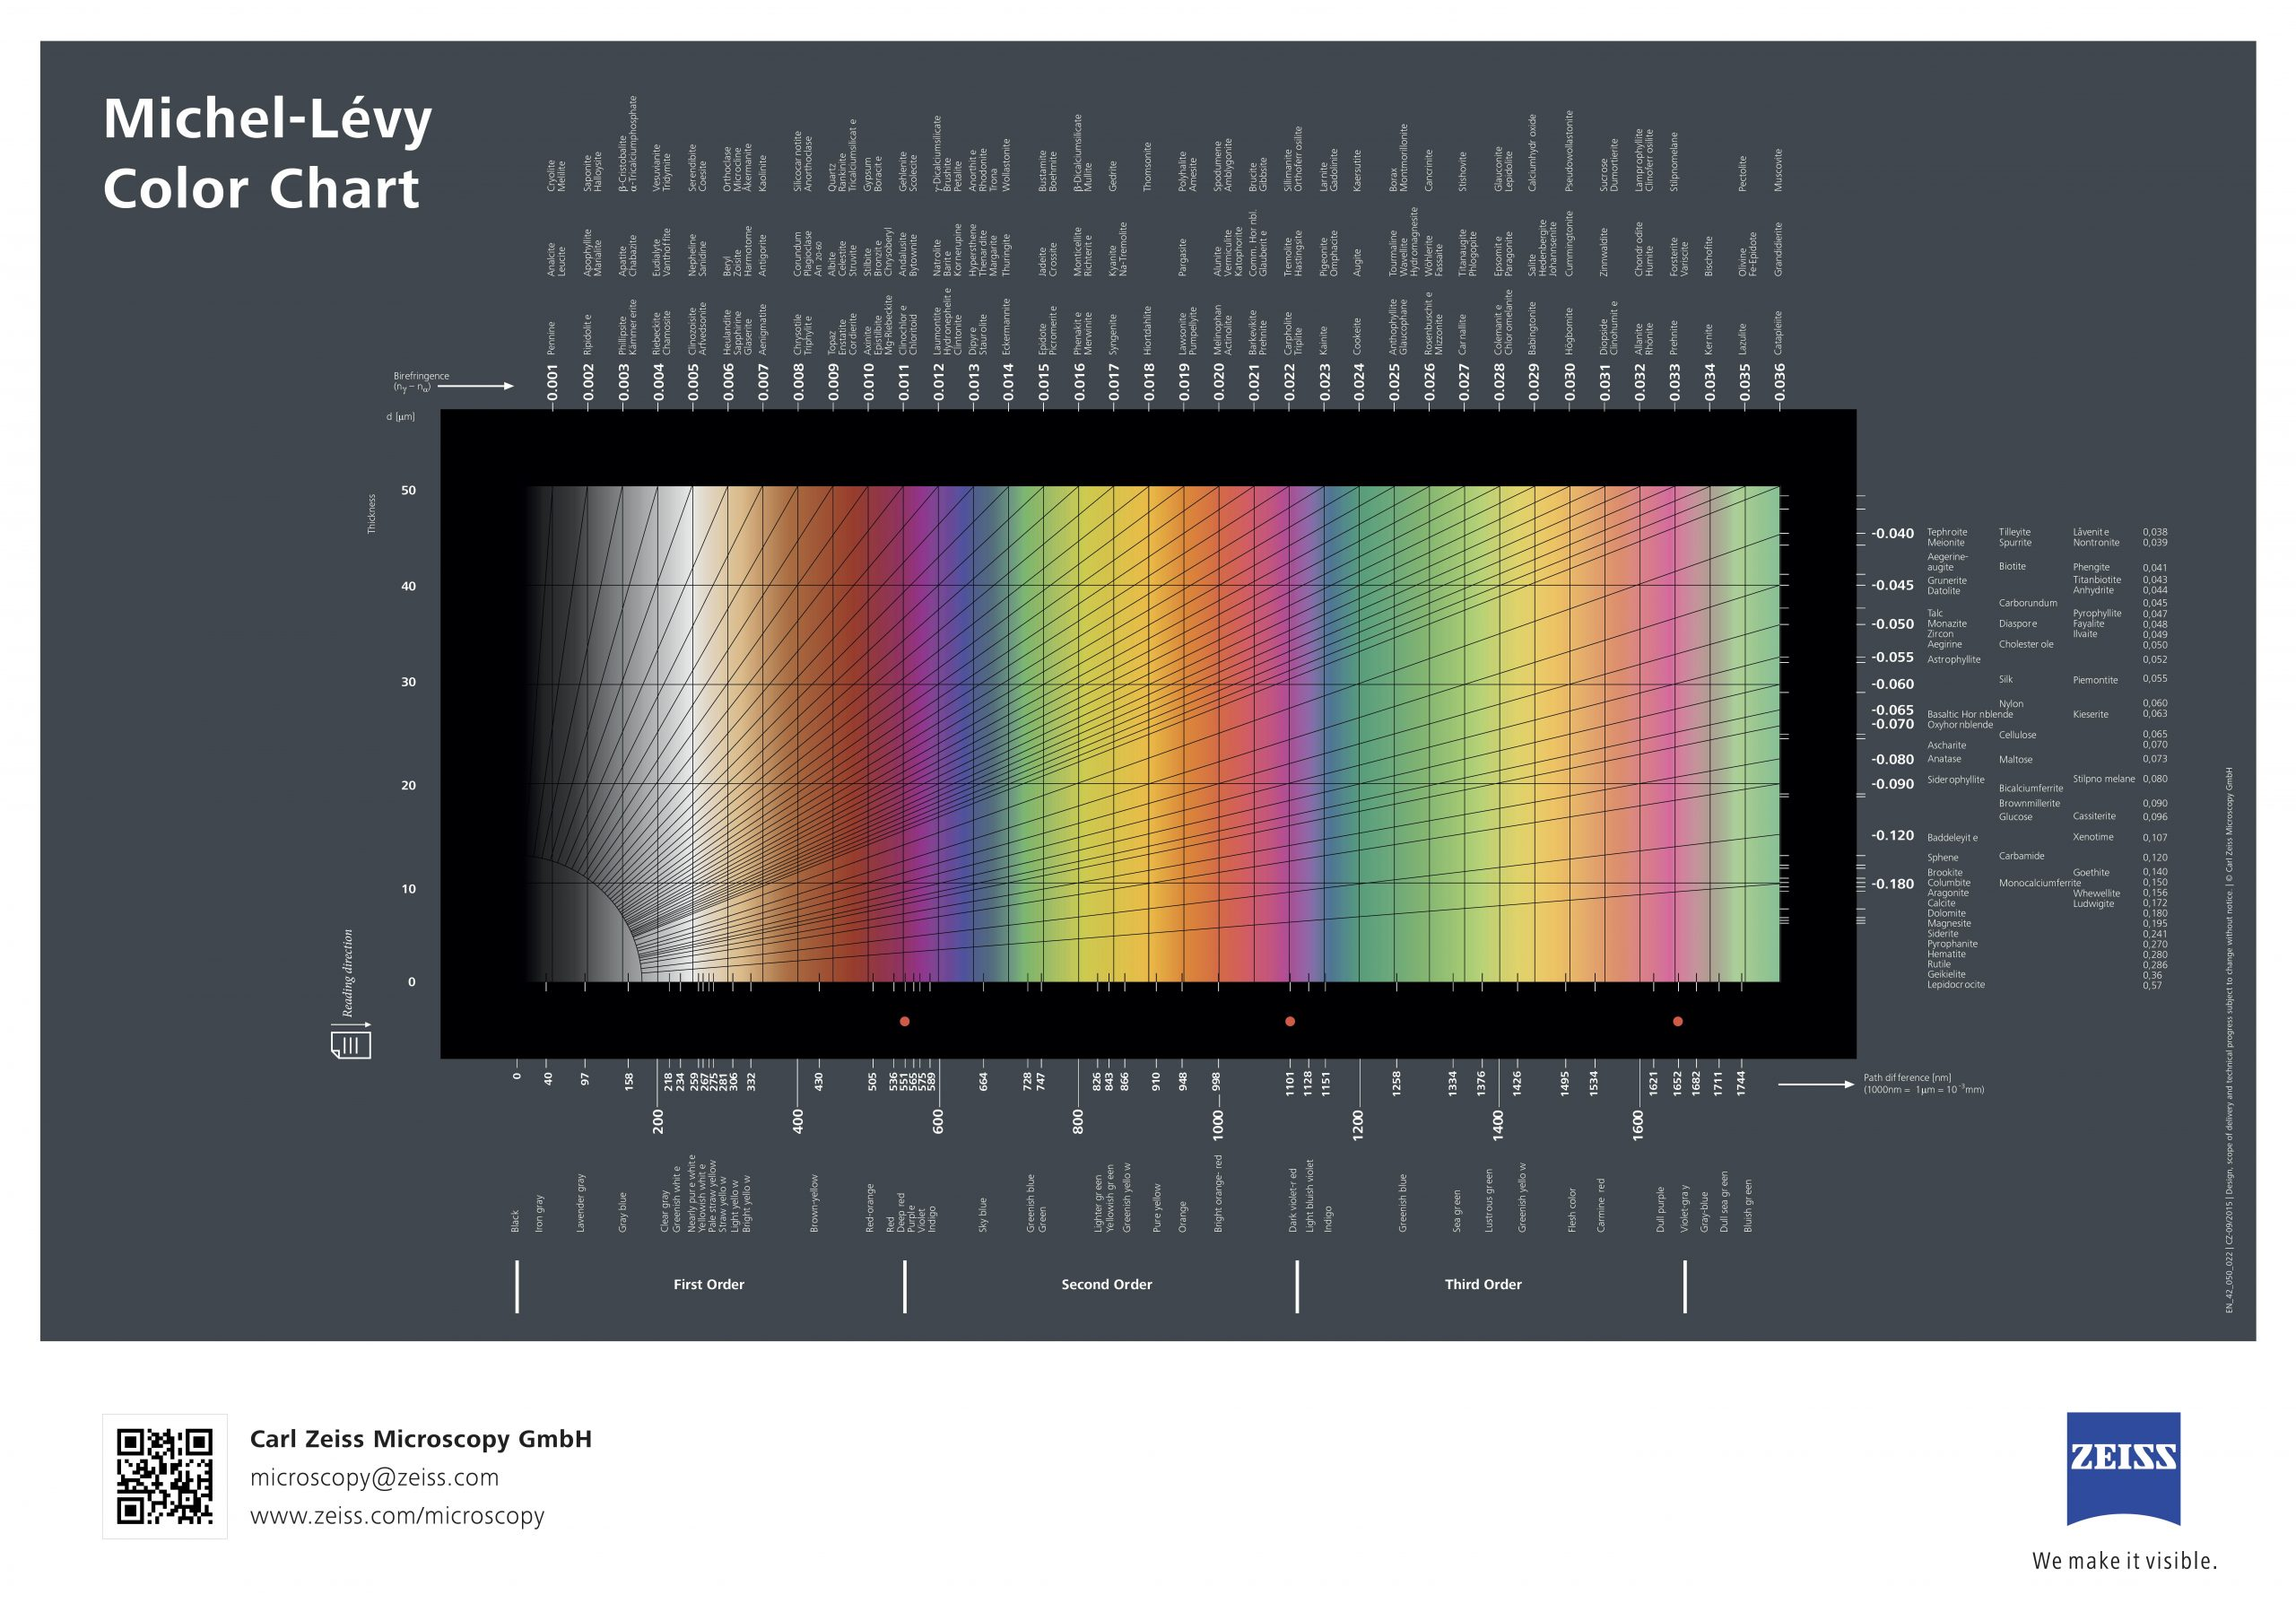 Figure 2.7.5. The Michel-Levy Interference Color Chart.